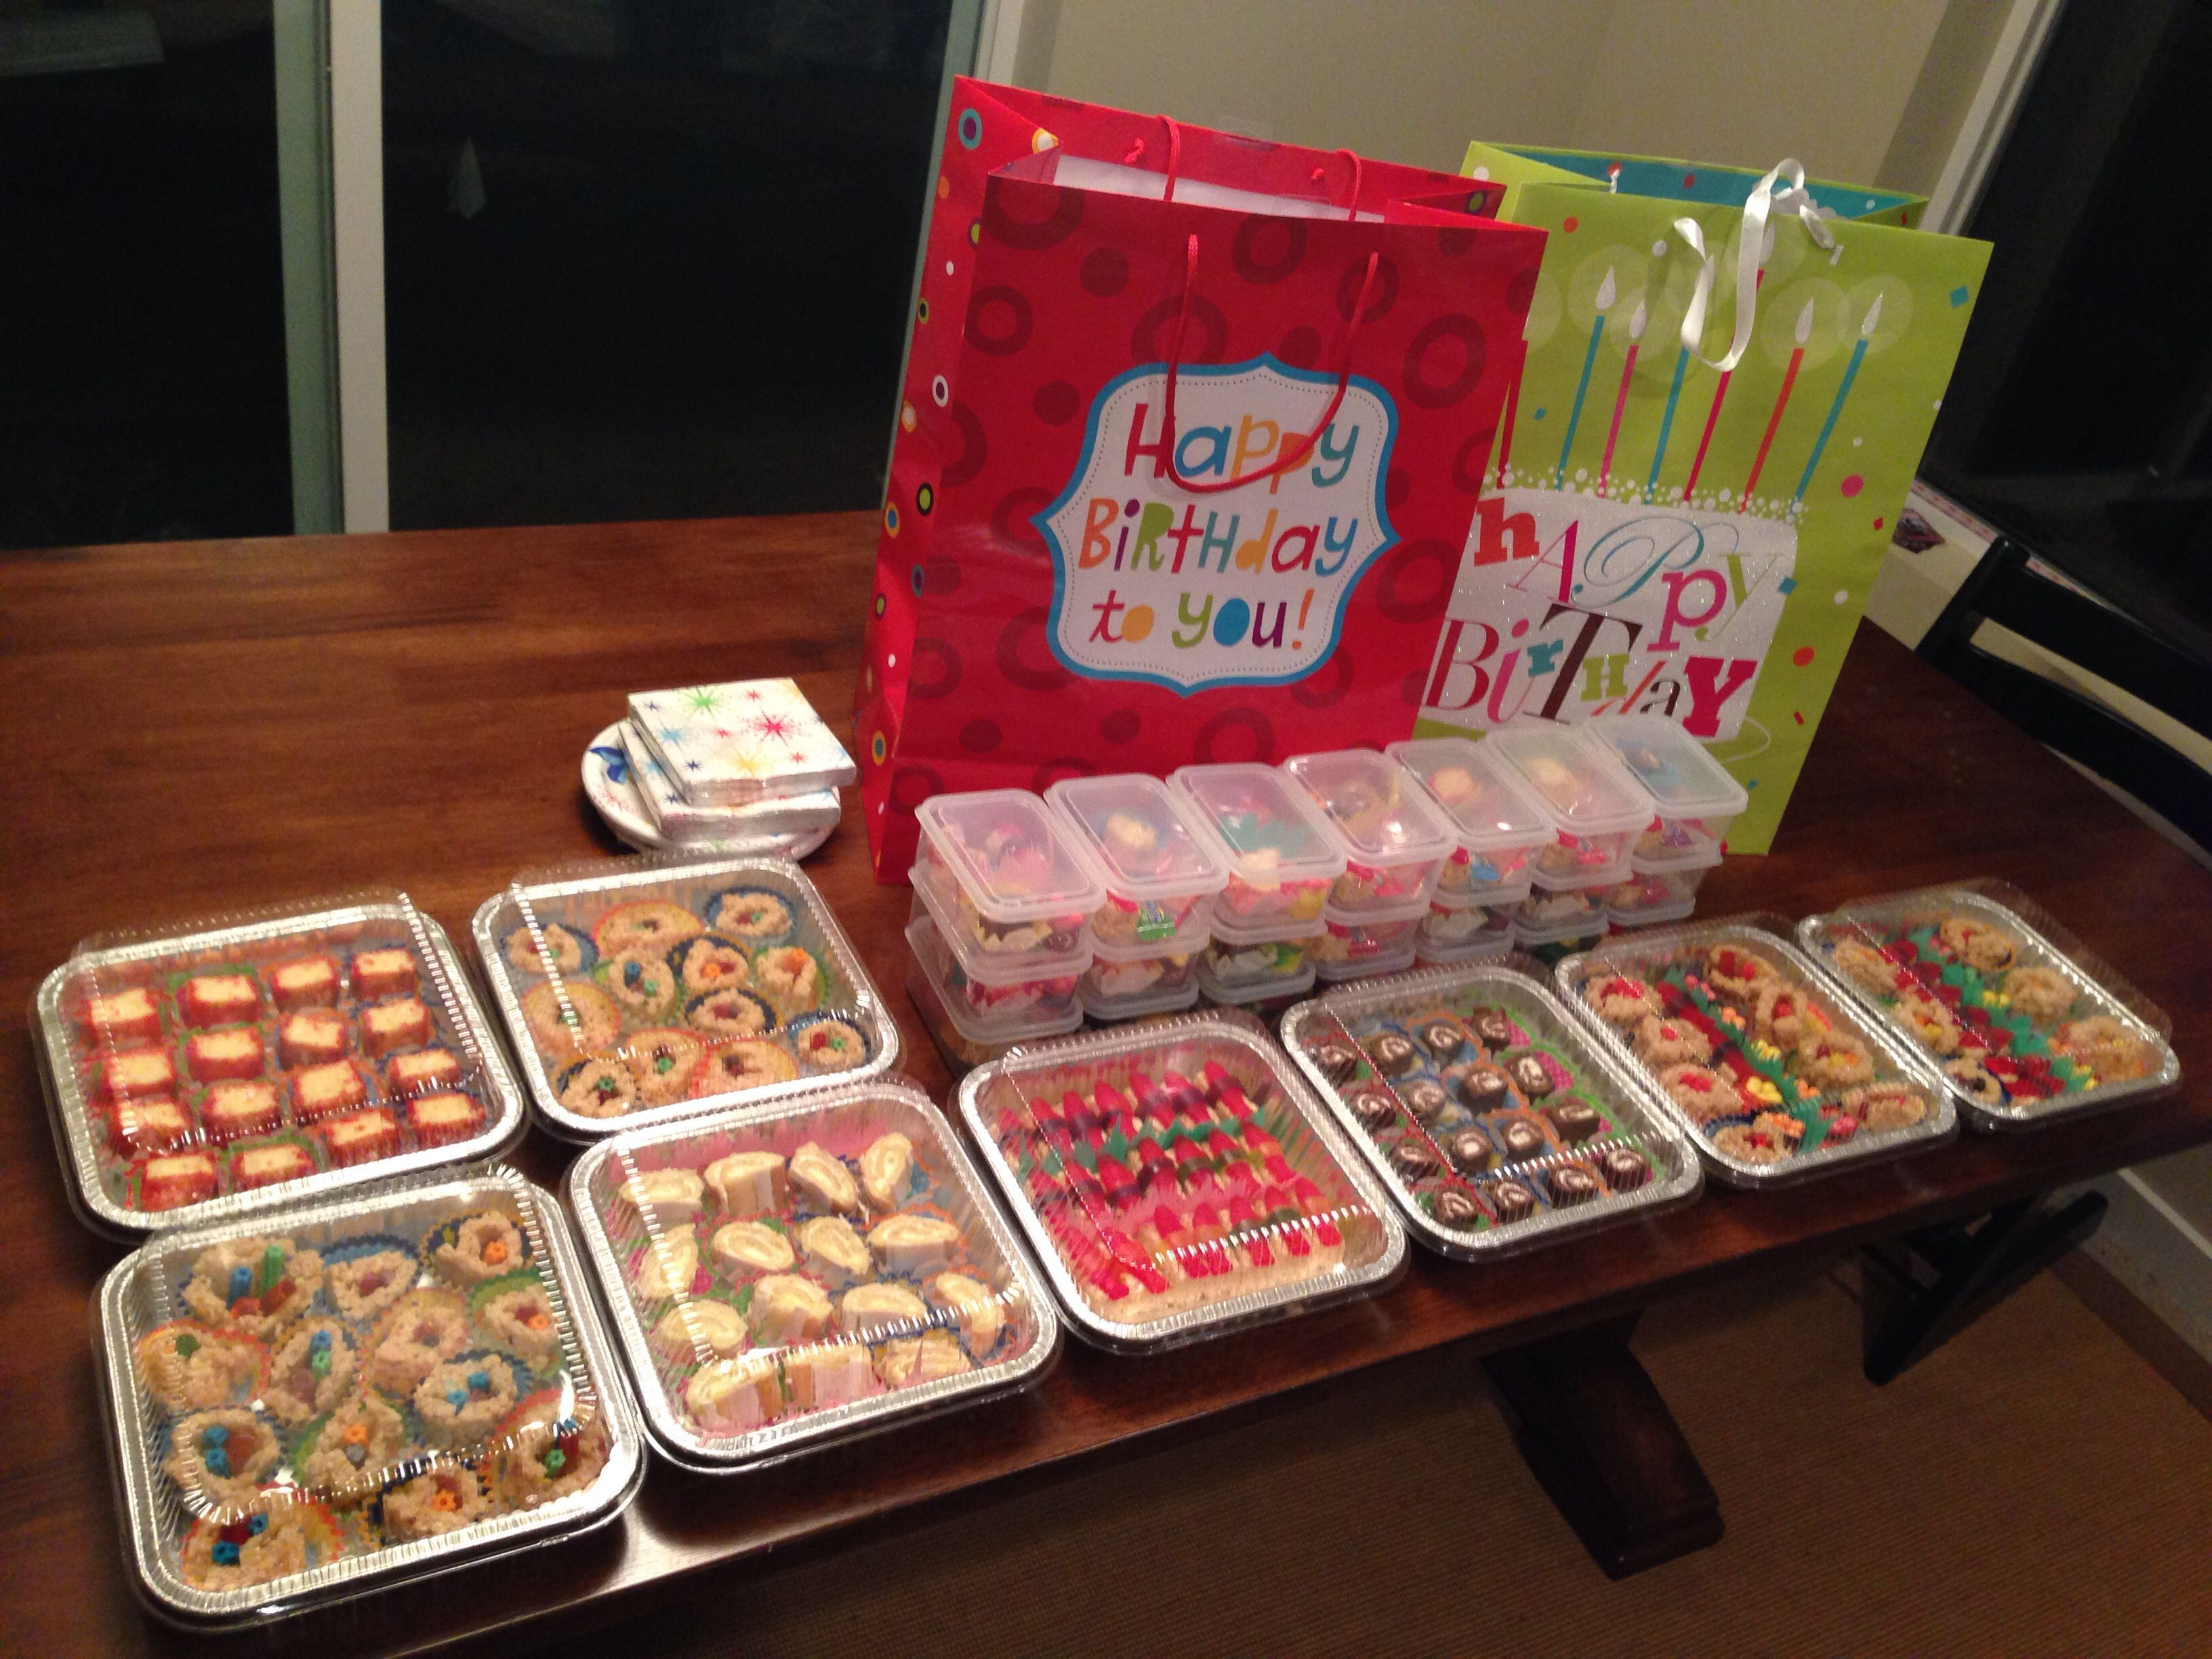 After about 3 hours of work (with two people) we made enough for an entire class. Each student gets at least one of each kind of candy sushi and their own take-out box. #candysushi After about 3 hours of work (with two people) we made enough for an entire class. Each student gets at least one of each kind of candy sushi and their own take-out box. #candysushi